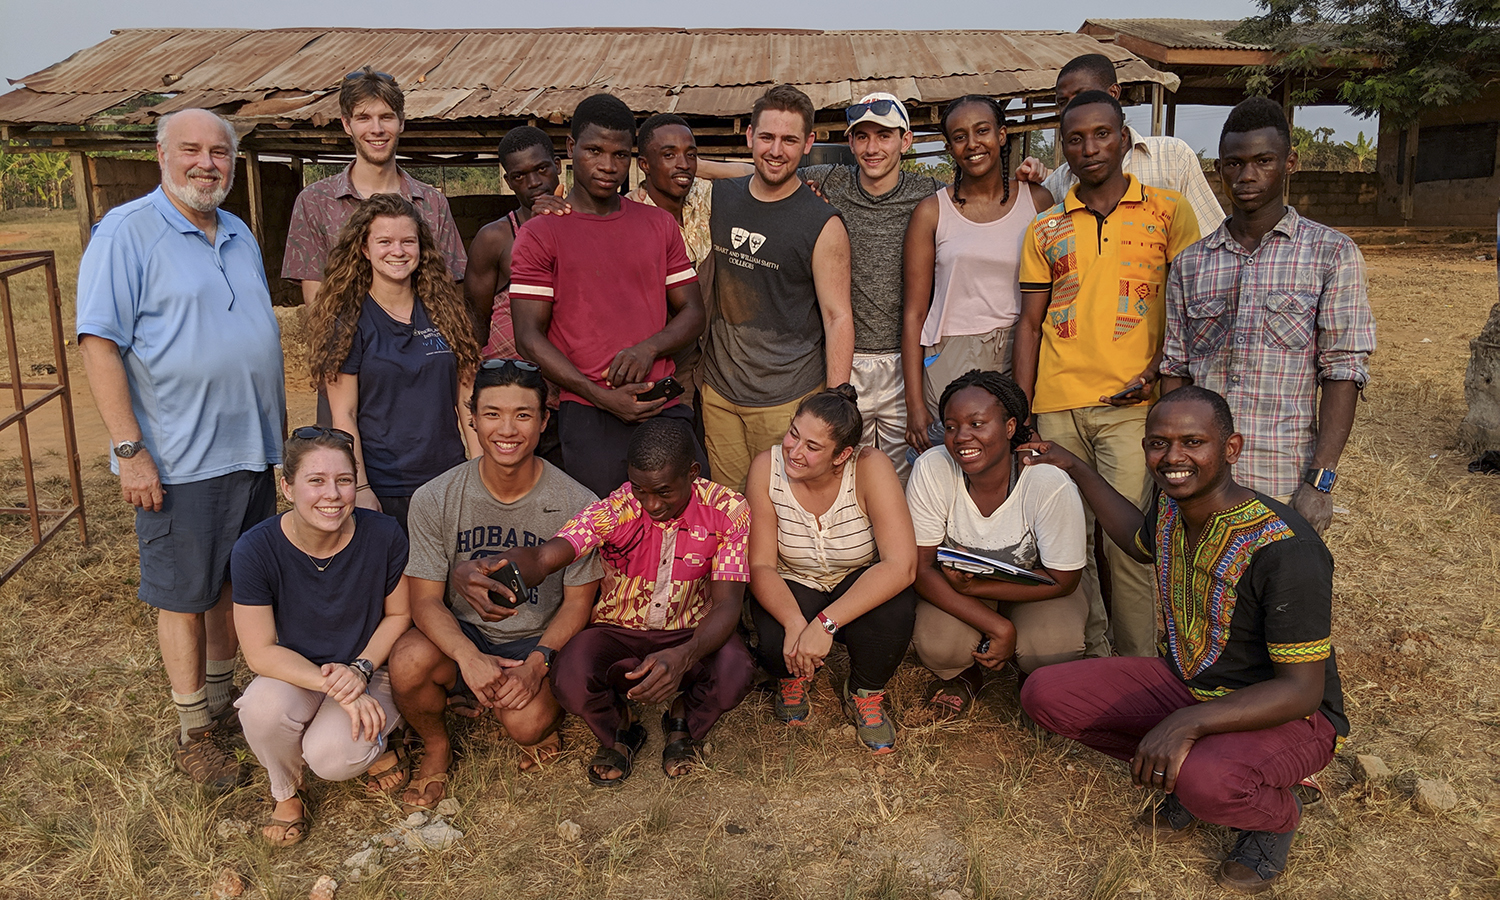 Professor of Sociology Jack Harris and students who traveled abroad during the J-term semester pose in Ghana. During the three-week program, students used asset-based community development strategies and collaboration to implement products and services in the agrarian village of NKontomire.